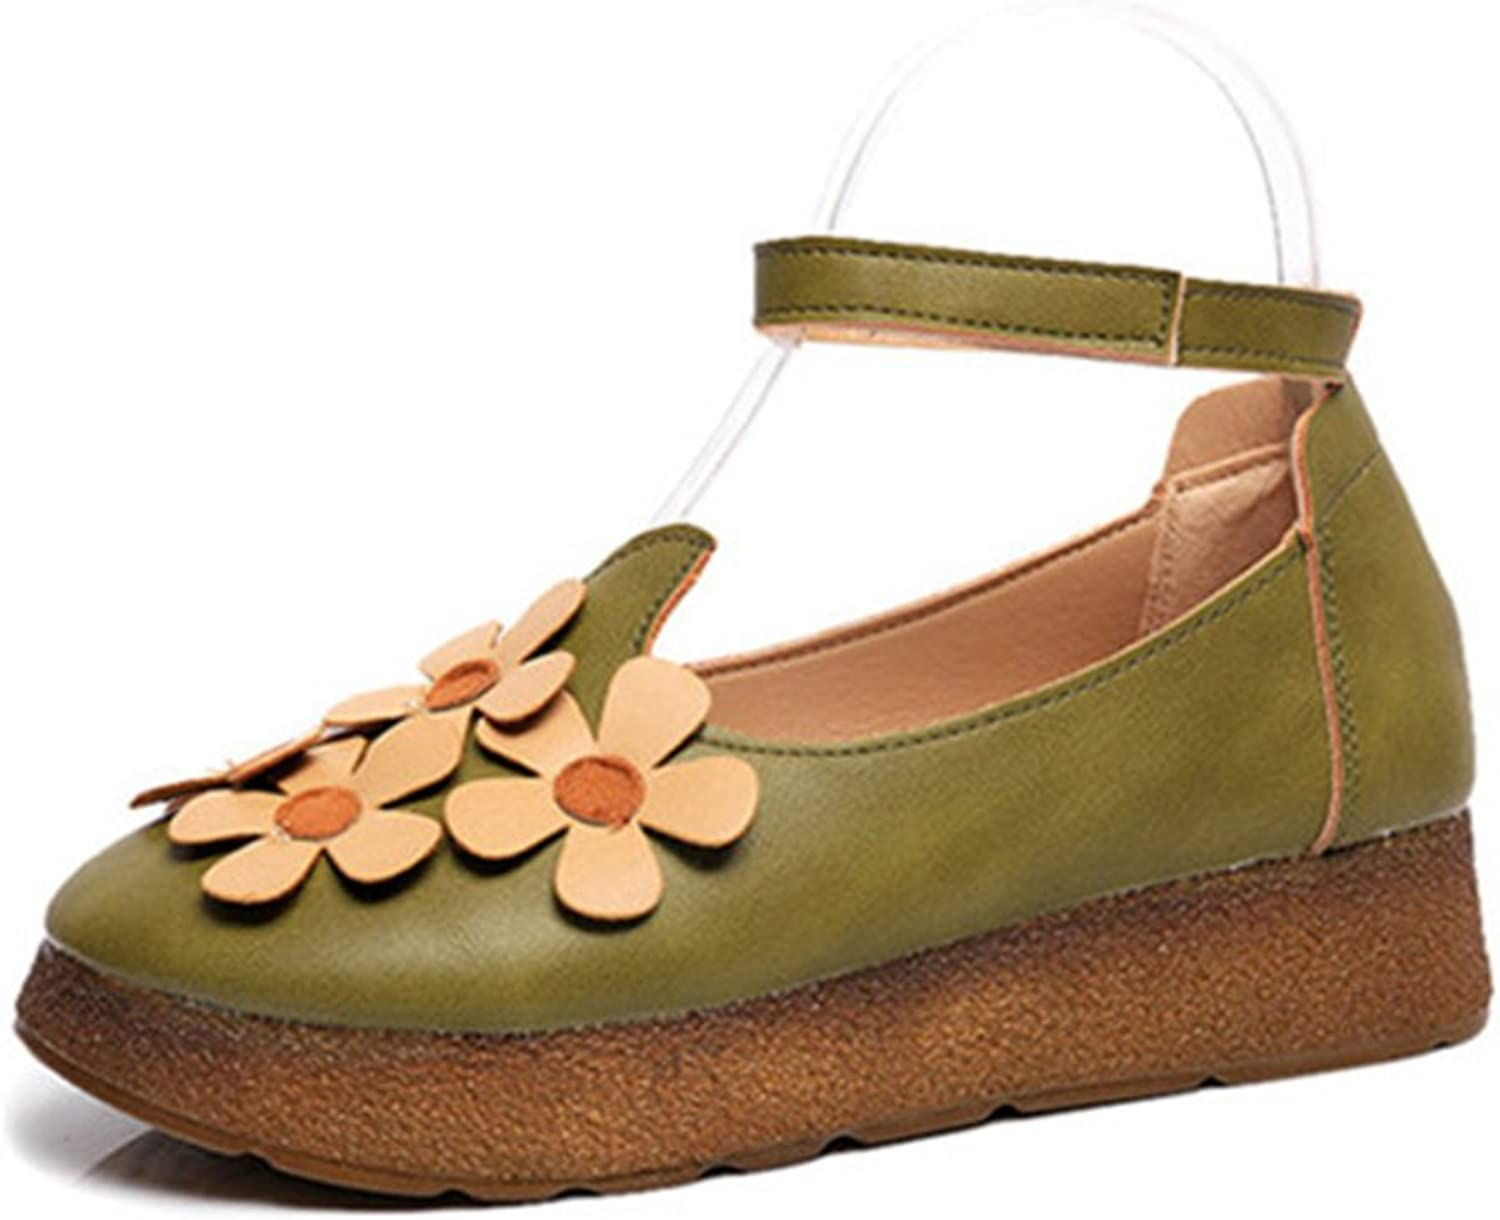 Huhuj shoes Joker thick-soled shoes in the fall sweet flowers students ' shoes Comfort flat womens shoes